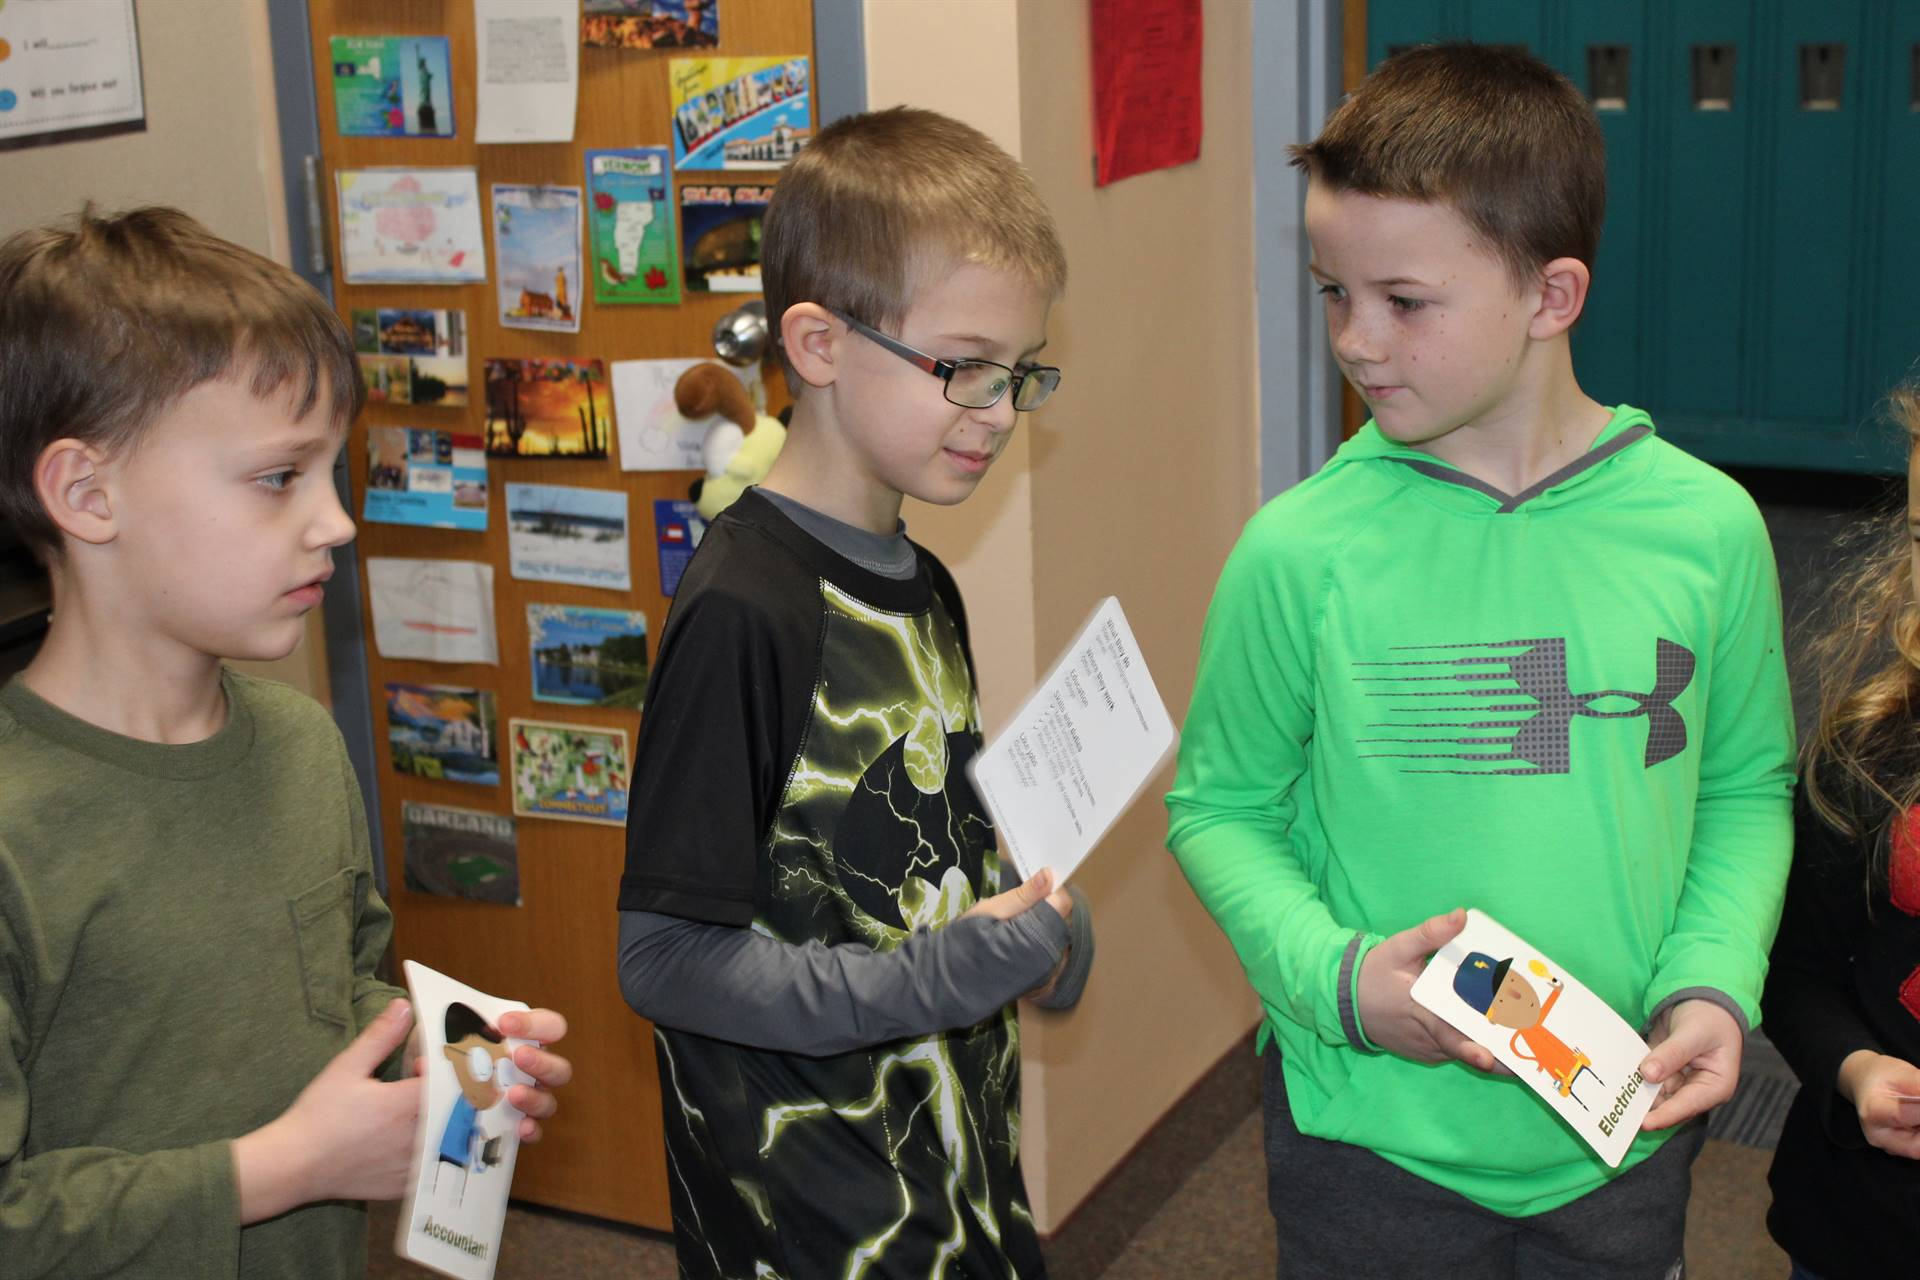 Franklin students holding flash cards